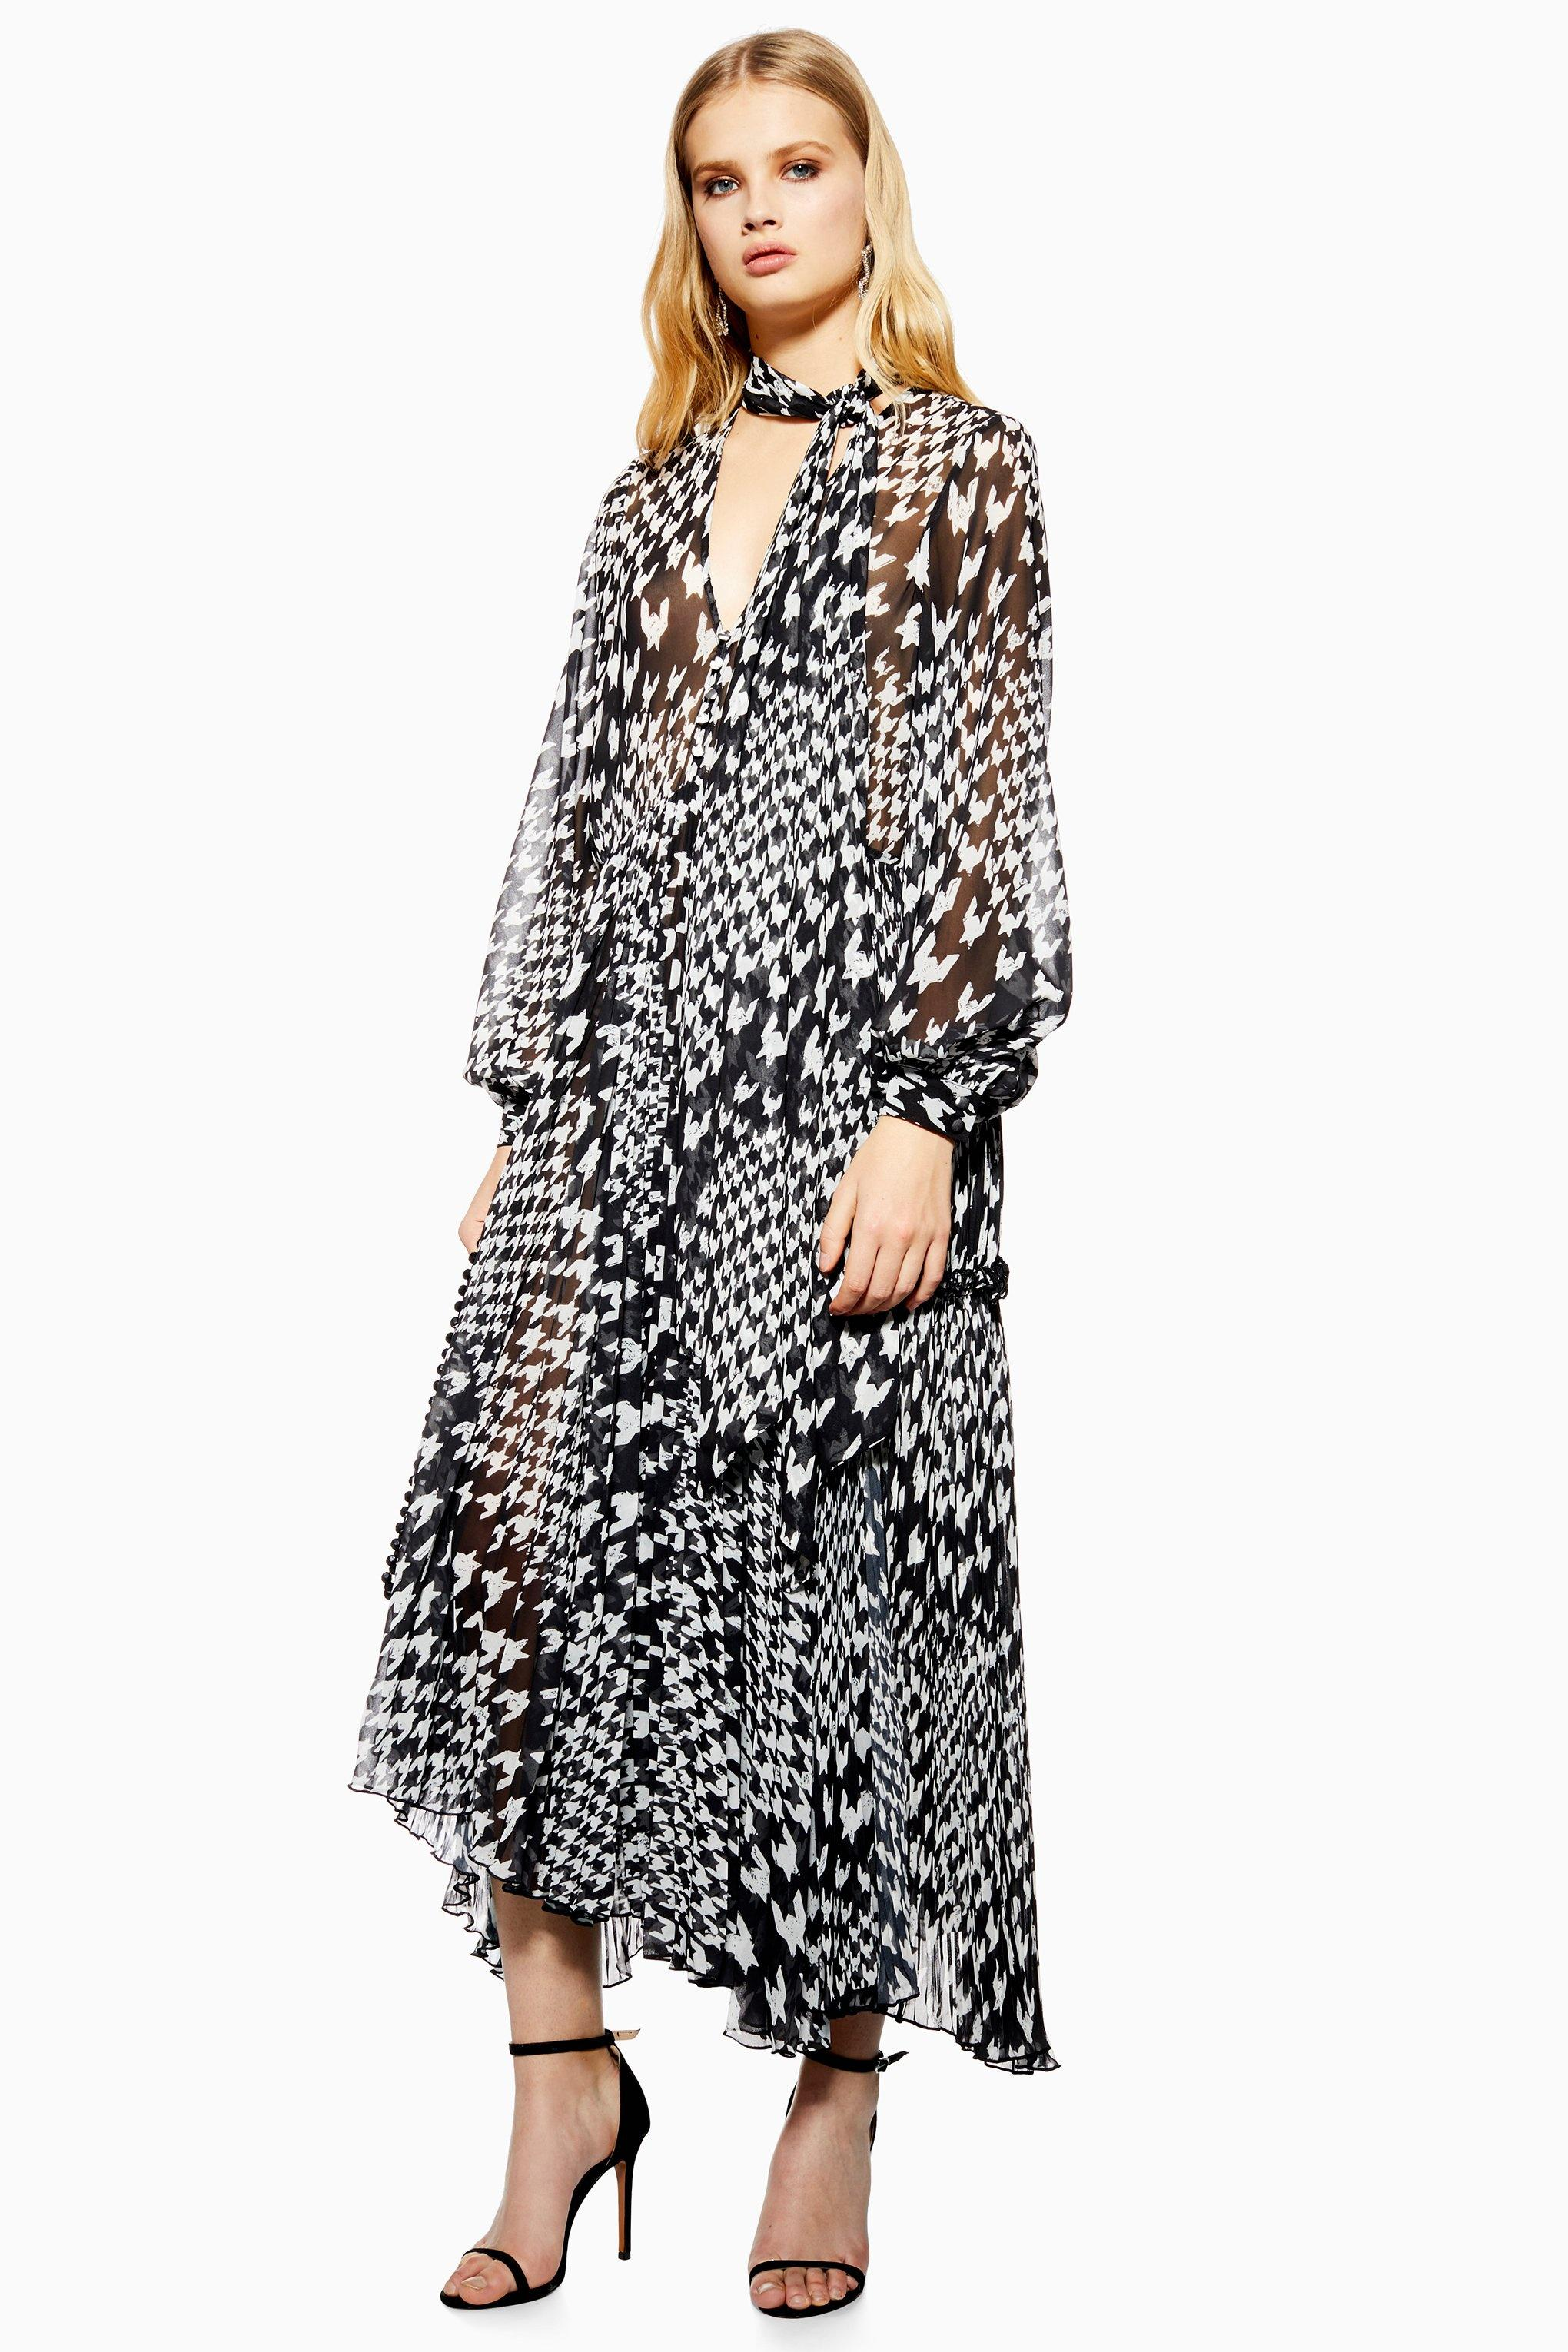 1b126e82335 Lyst - TOPSHOP Houndstooth Pleat Midi Skater Dress in Black - Save 7%